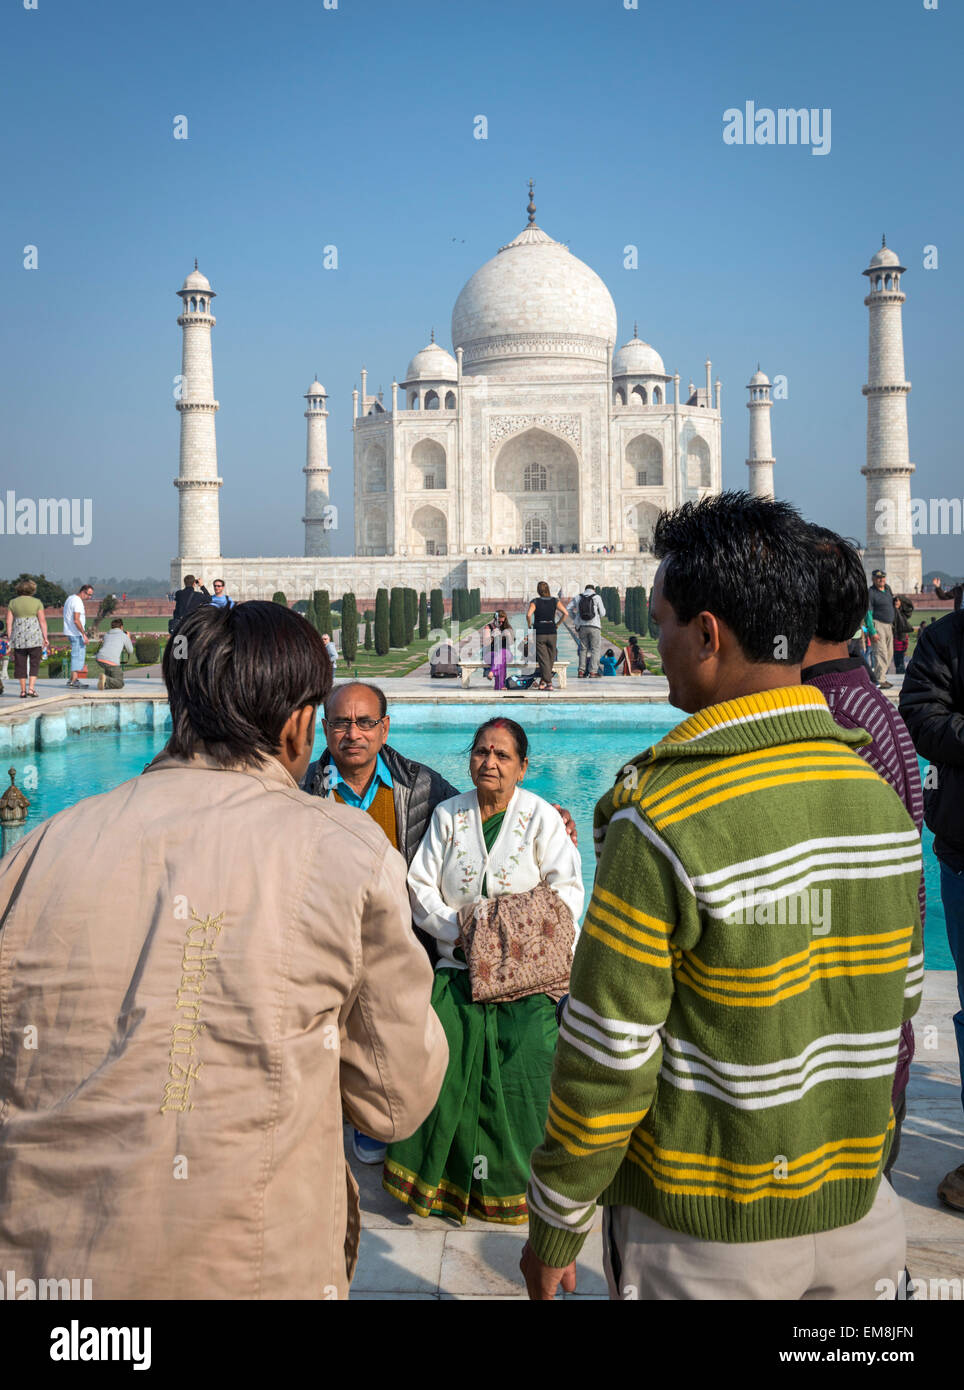 An elderly Indian couple being photographed in front of The Taj Mahal, Agra, India - Stock Image